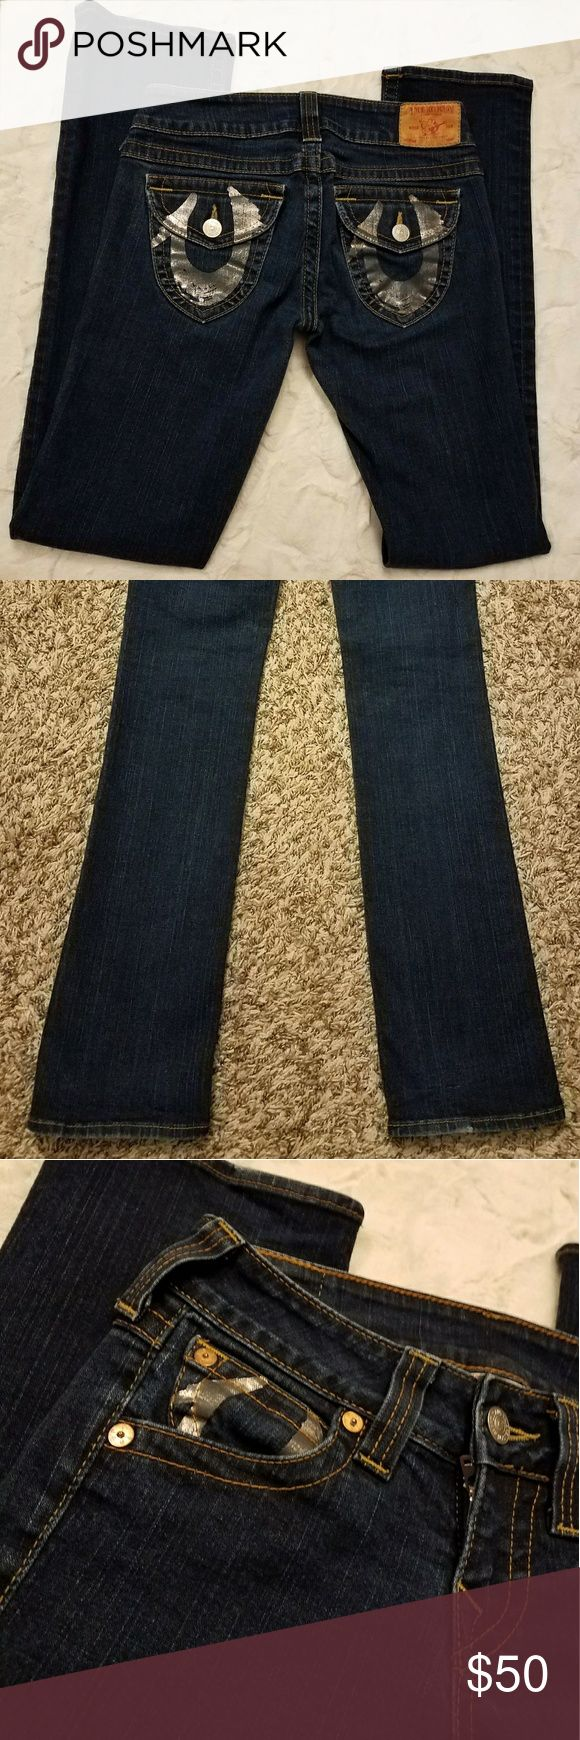 "True Religion Straight Leg Johnny Dark Wash Jeans Brand New! Worn once, in Amazing condition, very high quality! Straight Leg Johnny Jeans a straight leg cut with flap button back pockets with silver ""painted on"" signature True Religion horseshoes! WAIST 28"" INSEAM 32"" RISE 6.5"" leg opening 7"" True Religion Jeans Straight Leg"